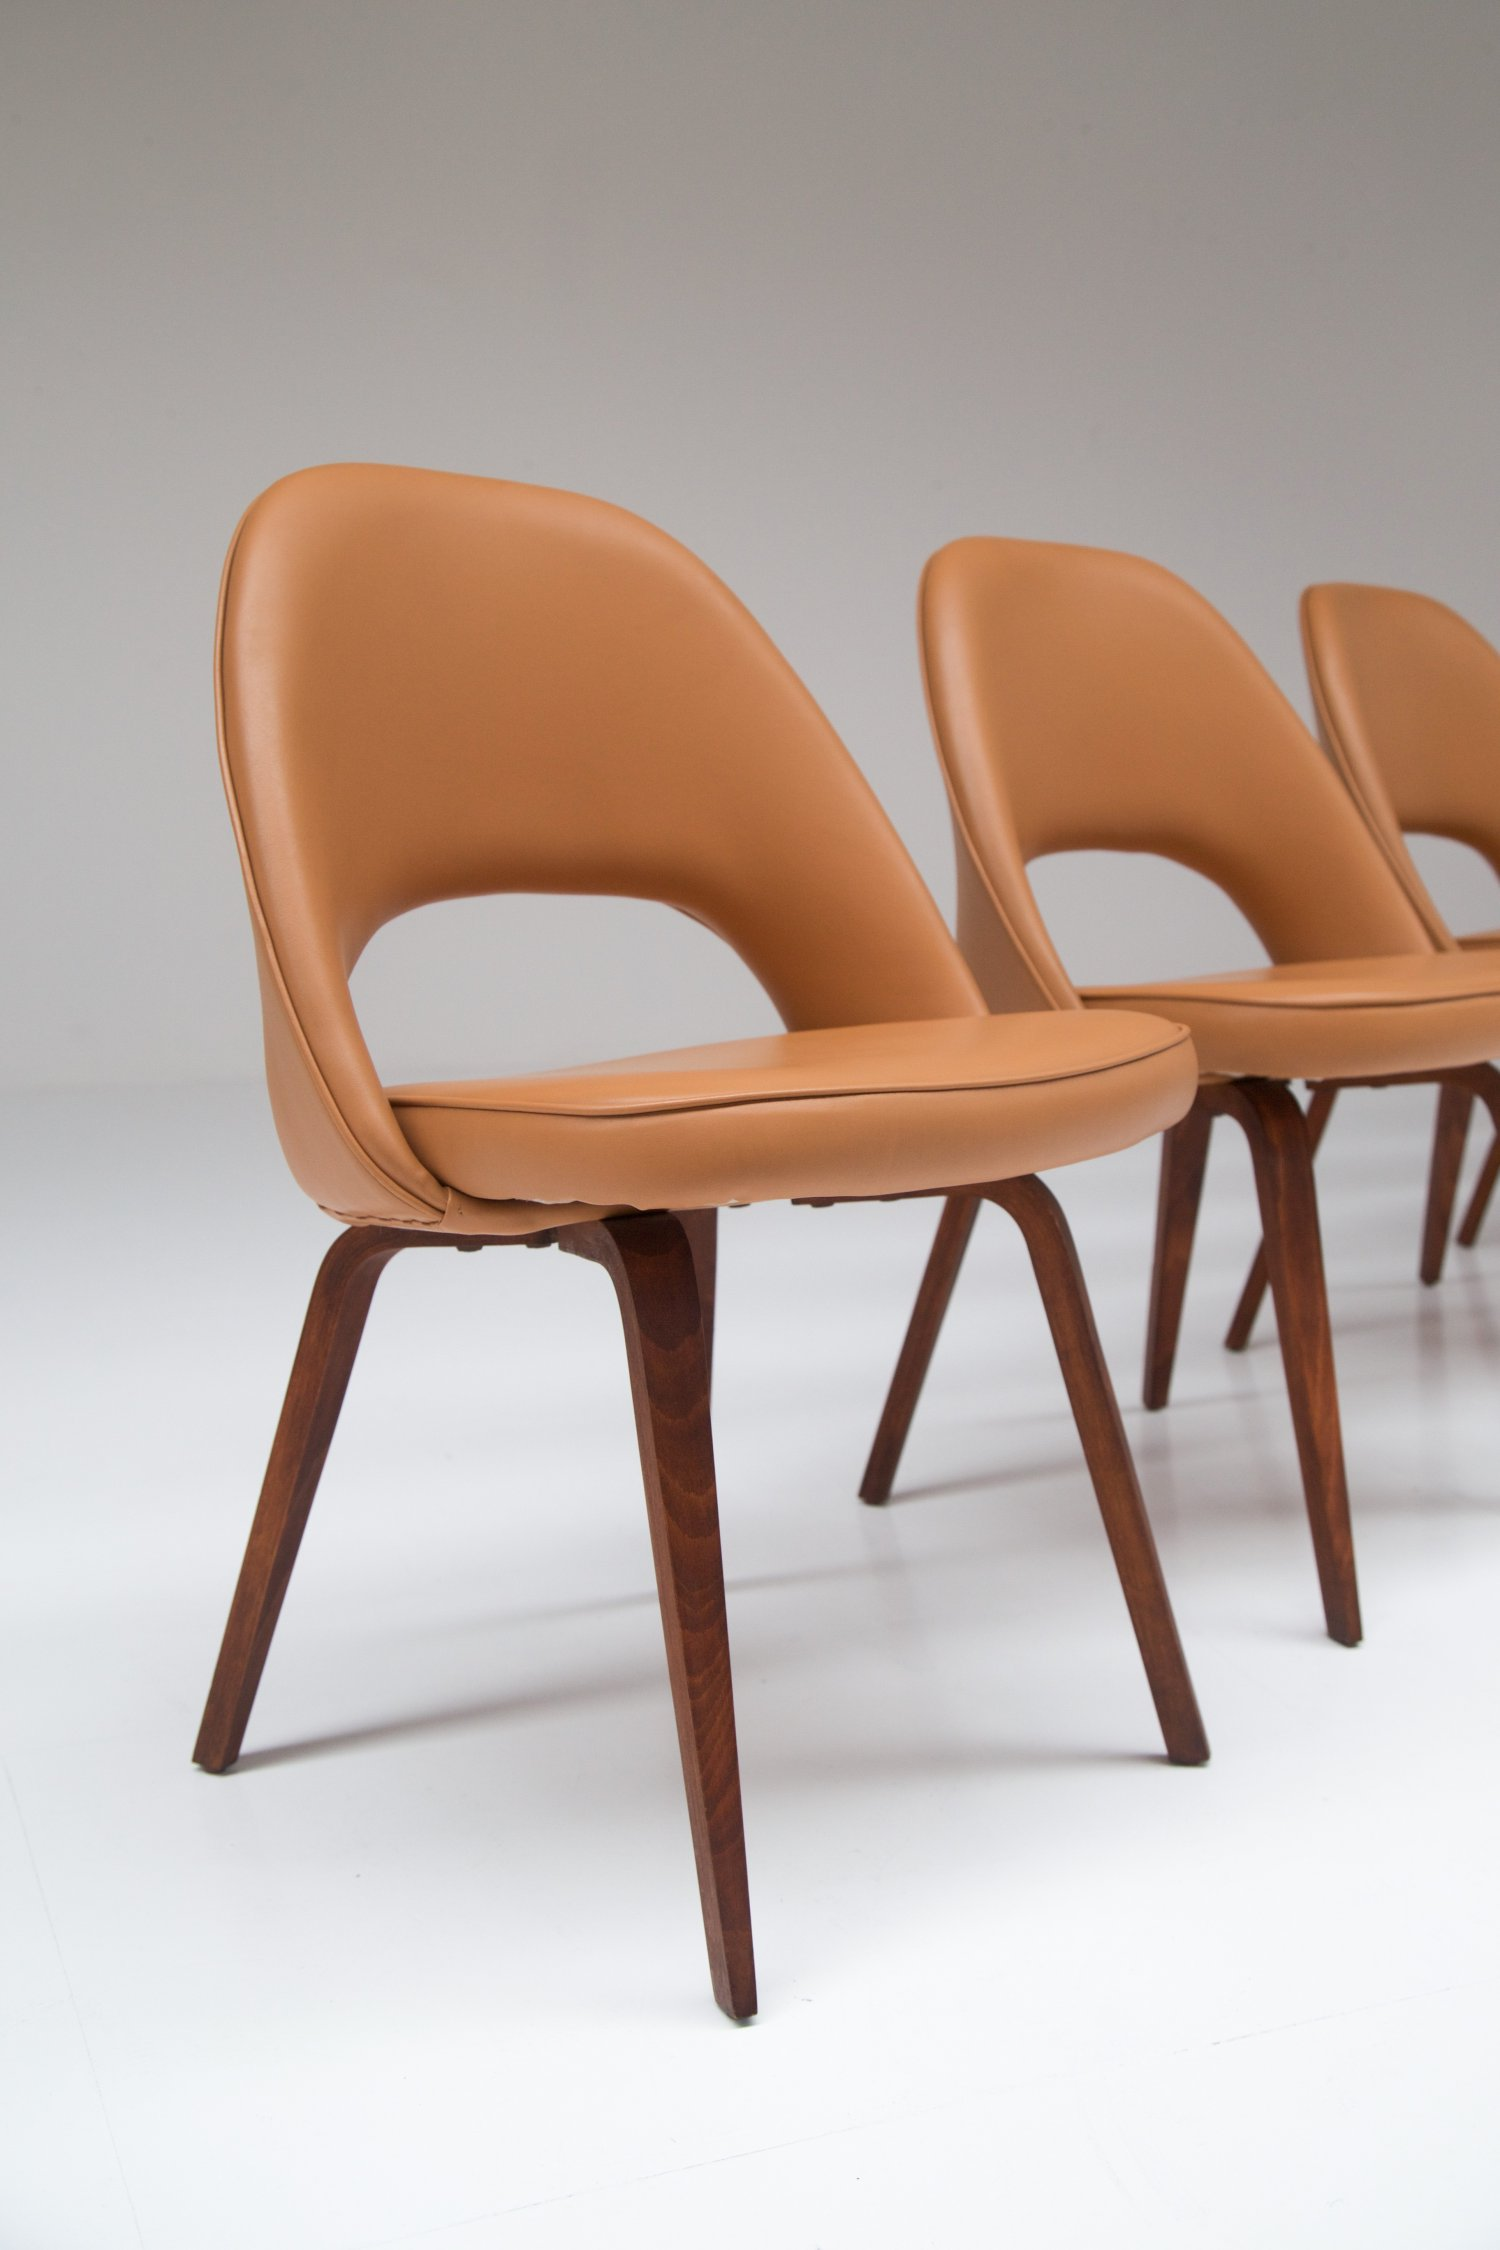 Large set of conference chairs by Eero Saarinen for Knoll